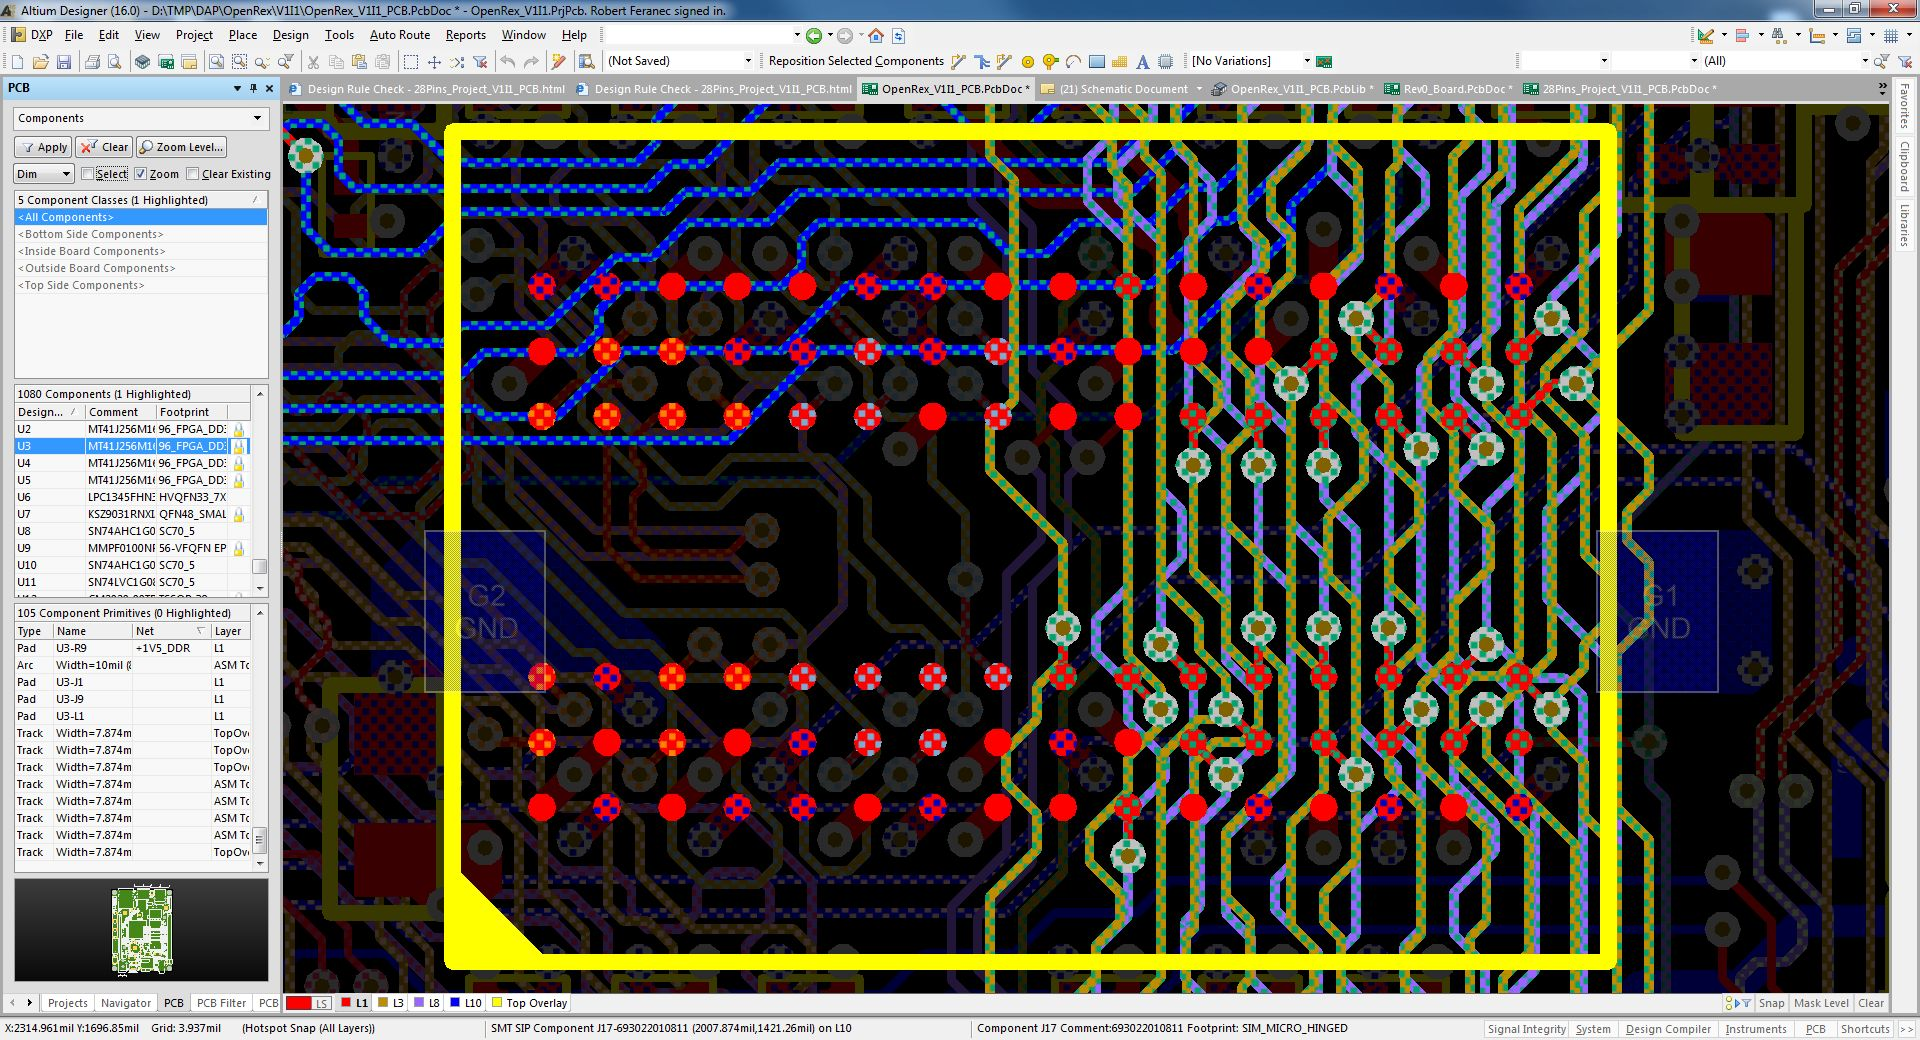 PCB - Fly-by - D31-D0 - stubs - All layers